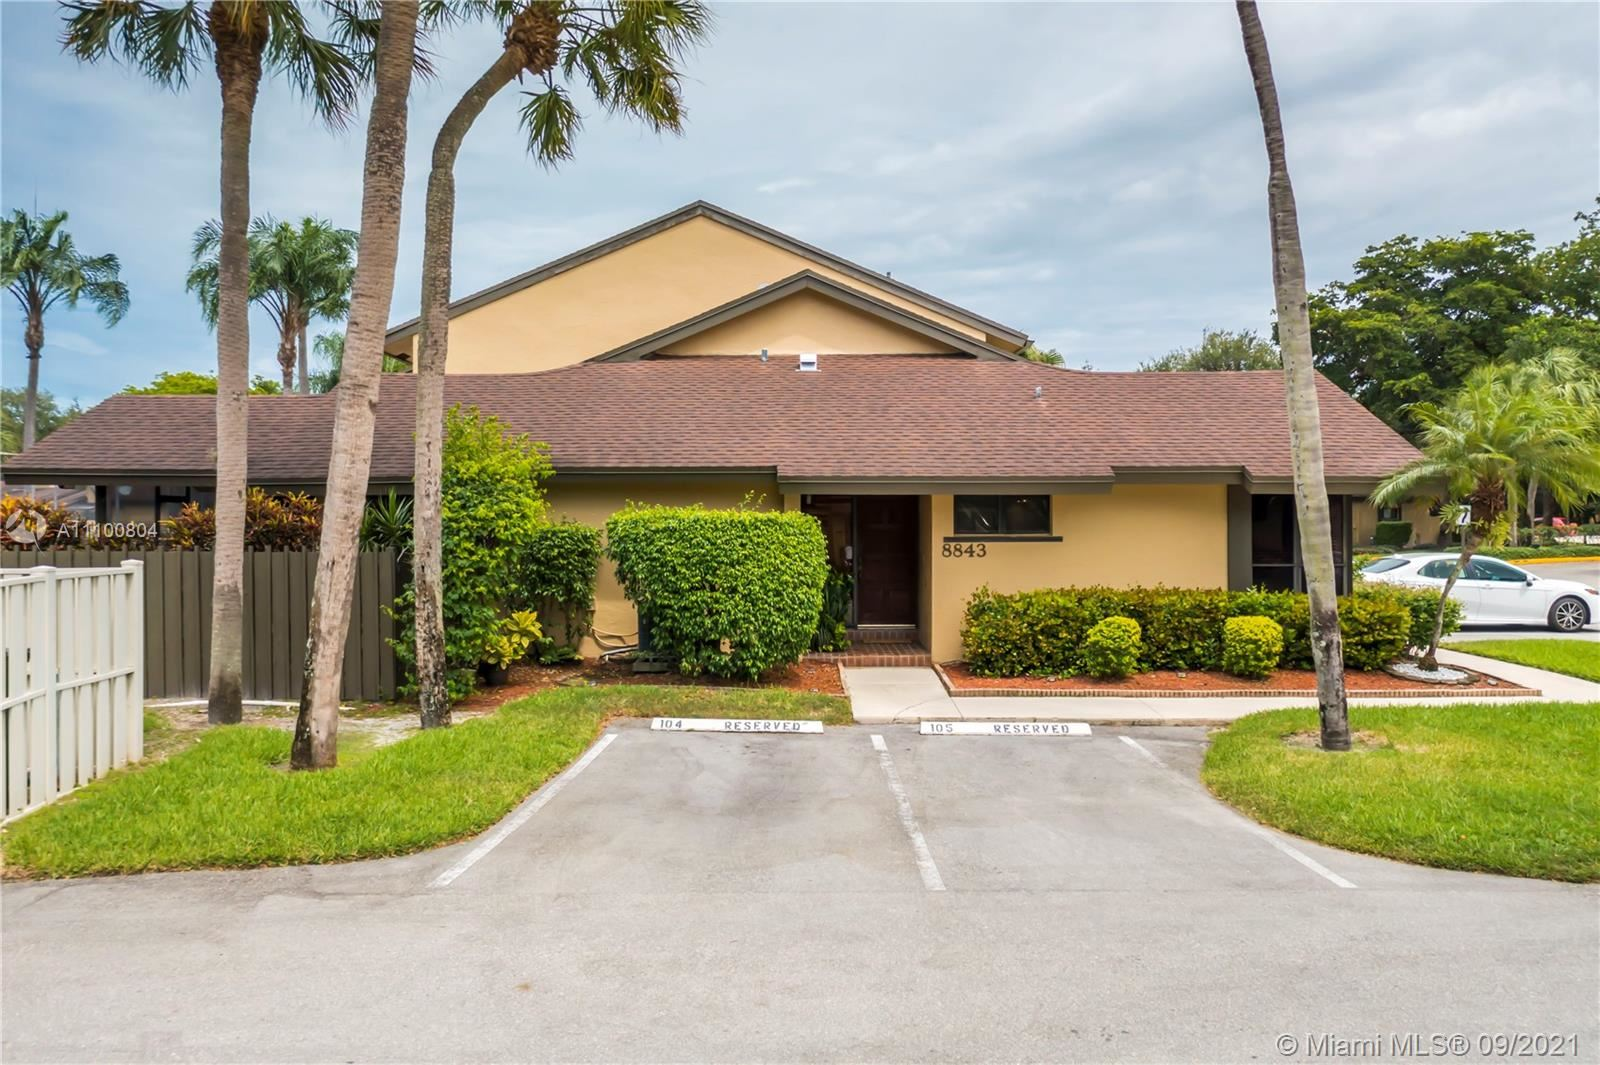 8843 Cleary Blvd, Plantation, FL 33324 - #: A11100804